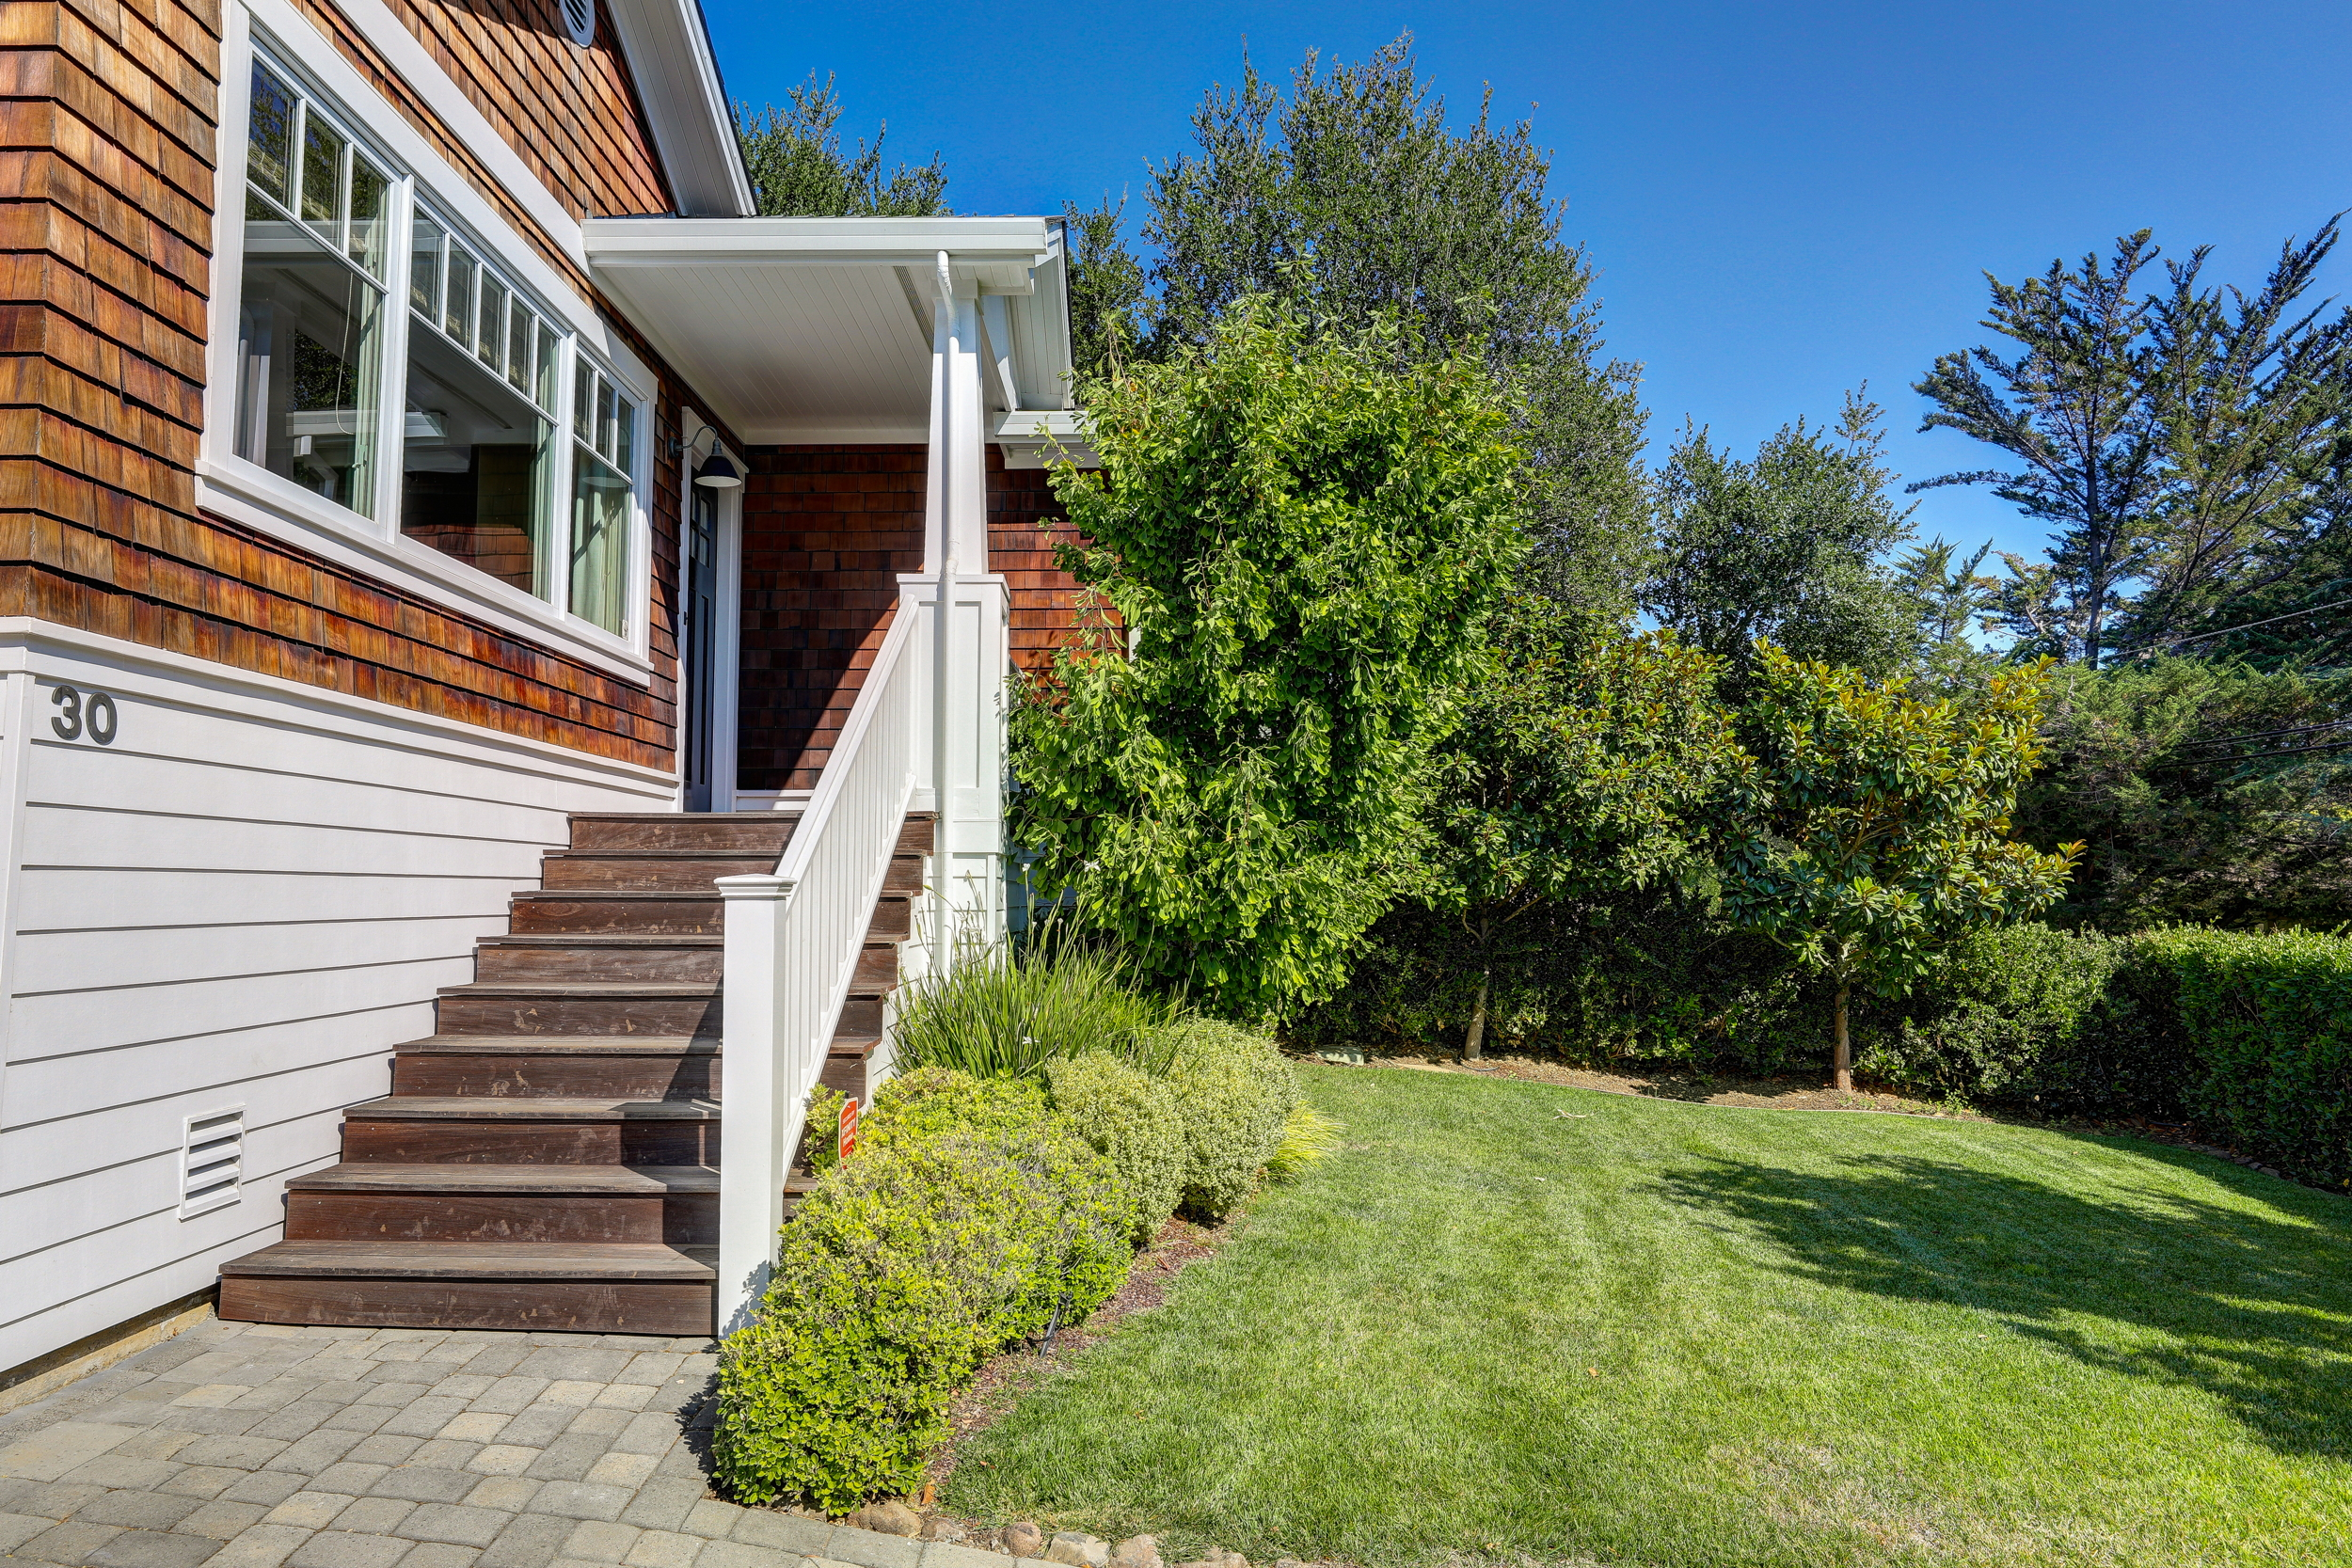 30Bayview-2018 05 - Own Marin Pacific Union - Marin County's Top Realtor.jpg